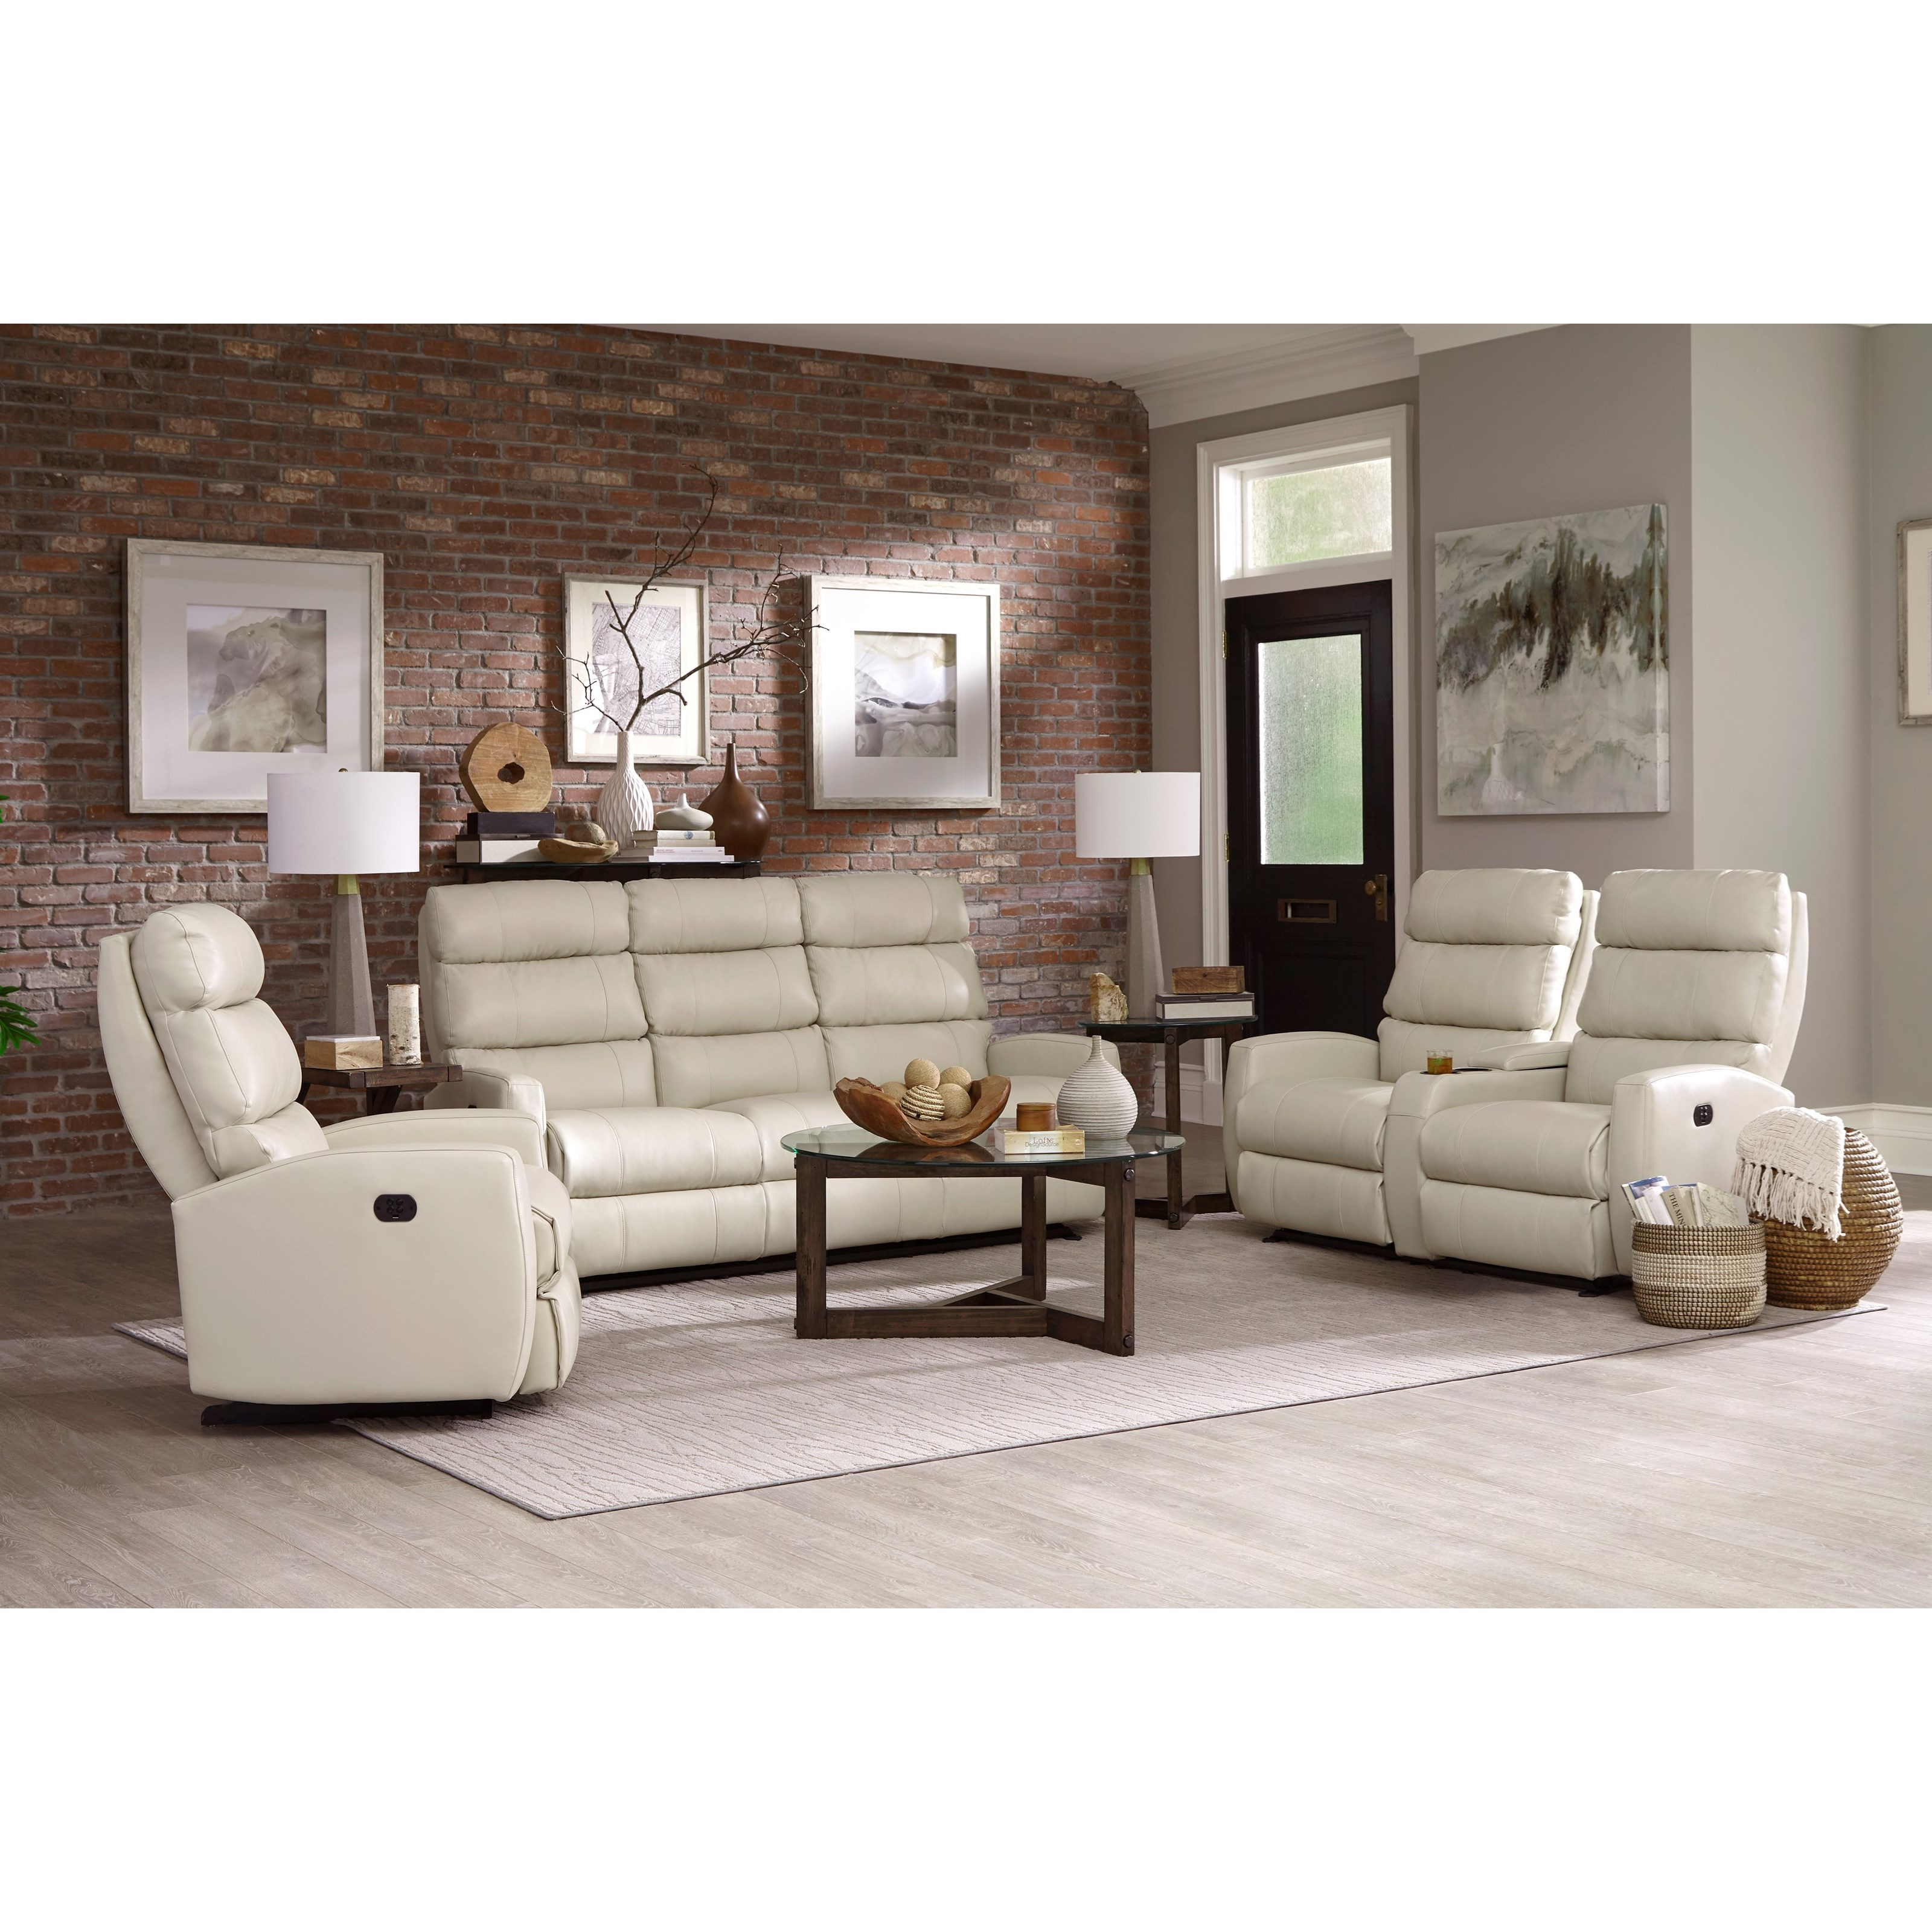 Best Home Furnishings Hillarie S615cp4 80 Inch Power